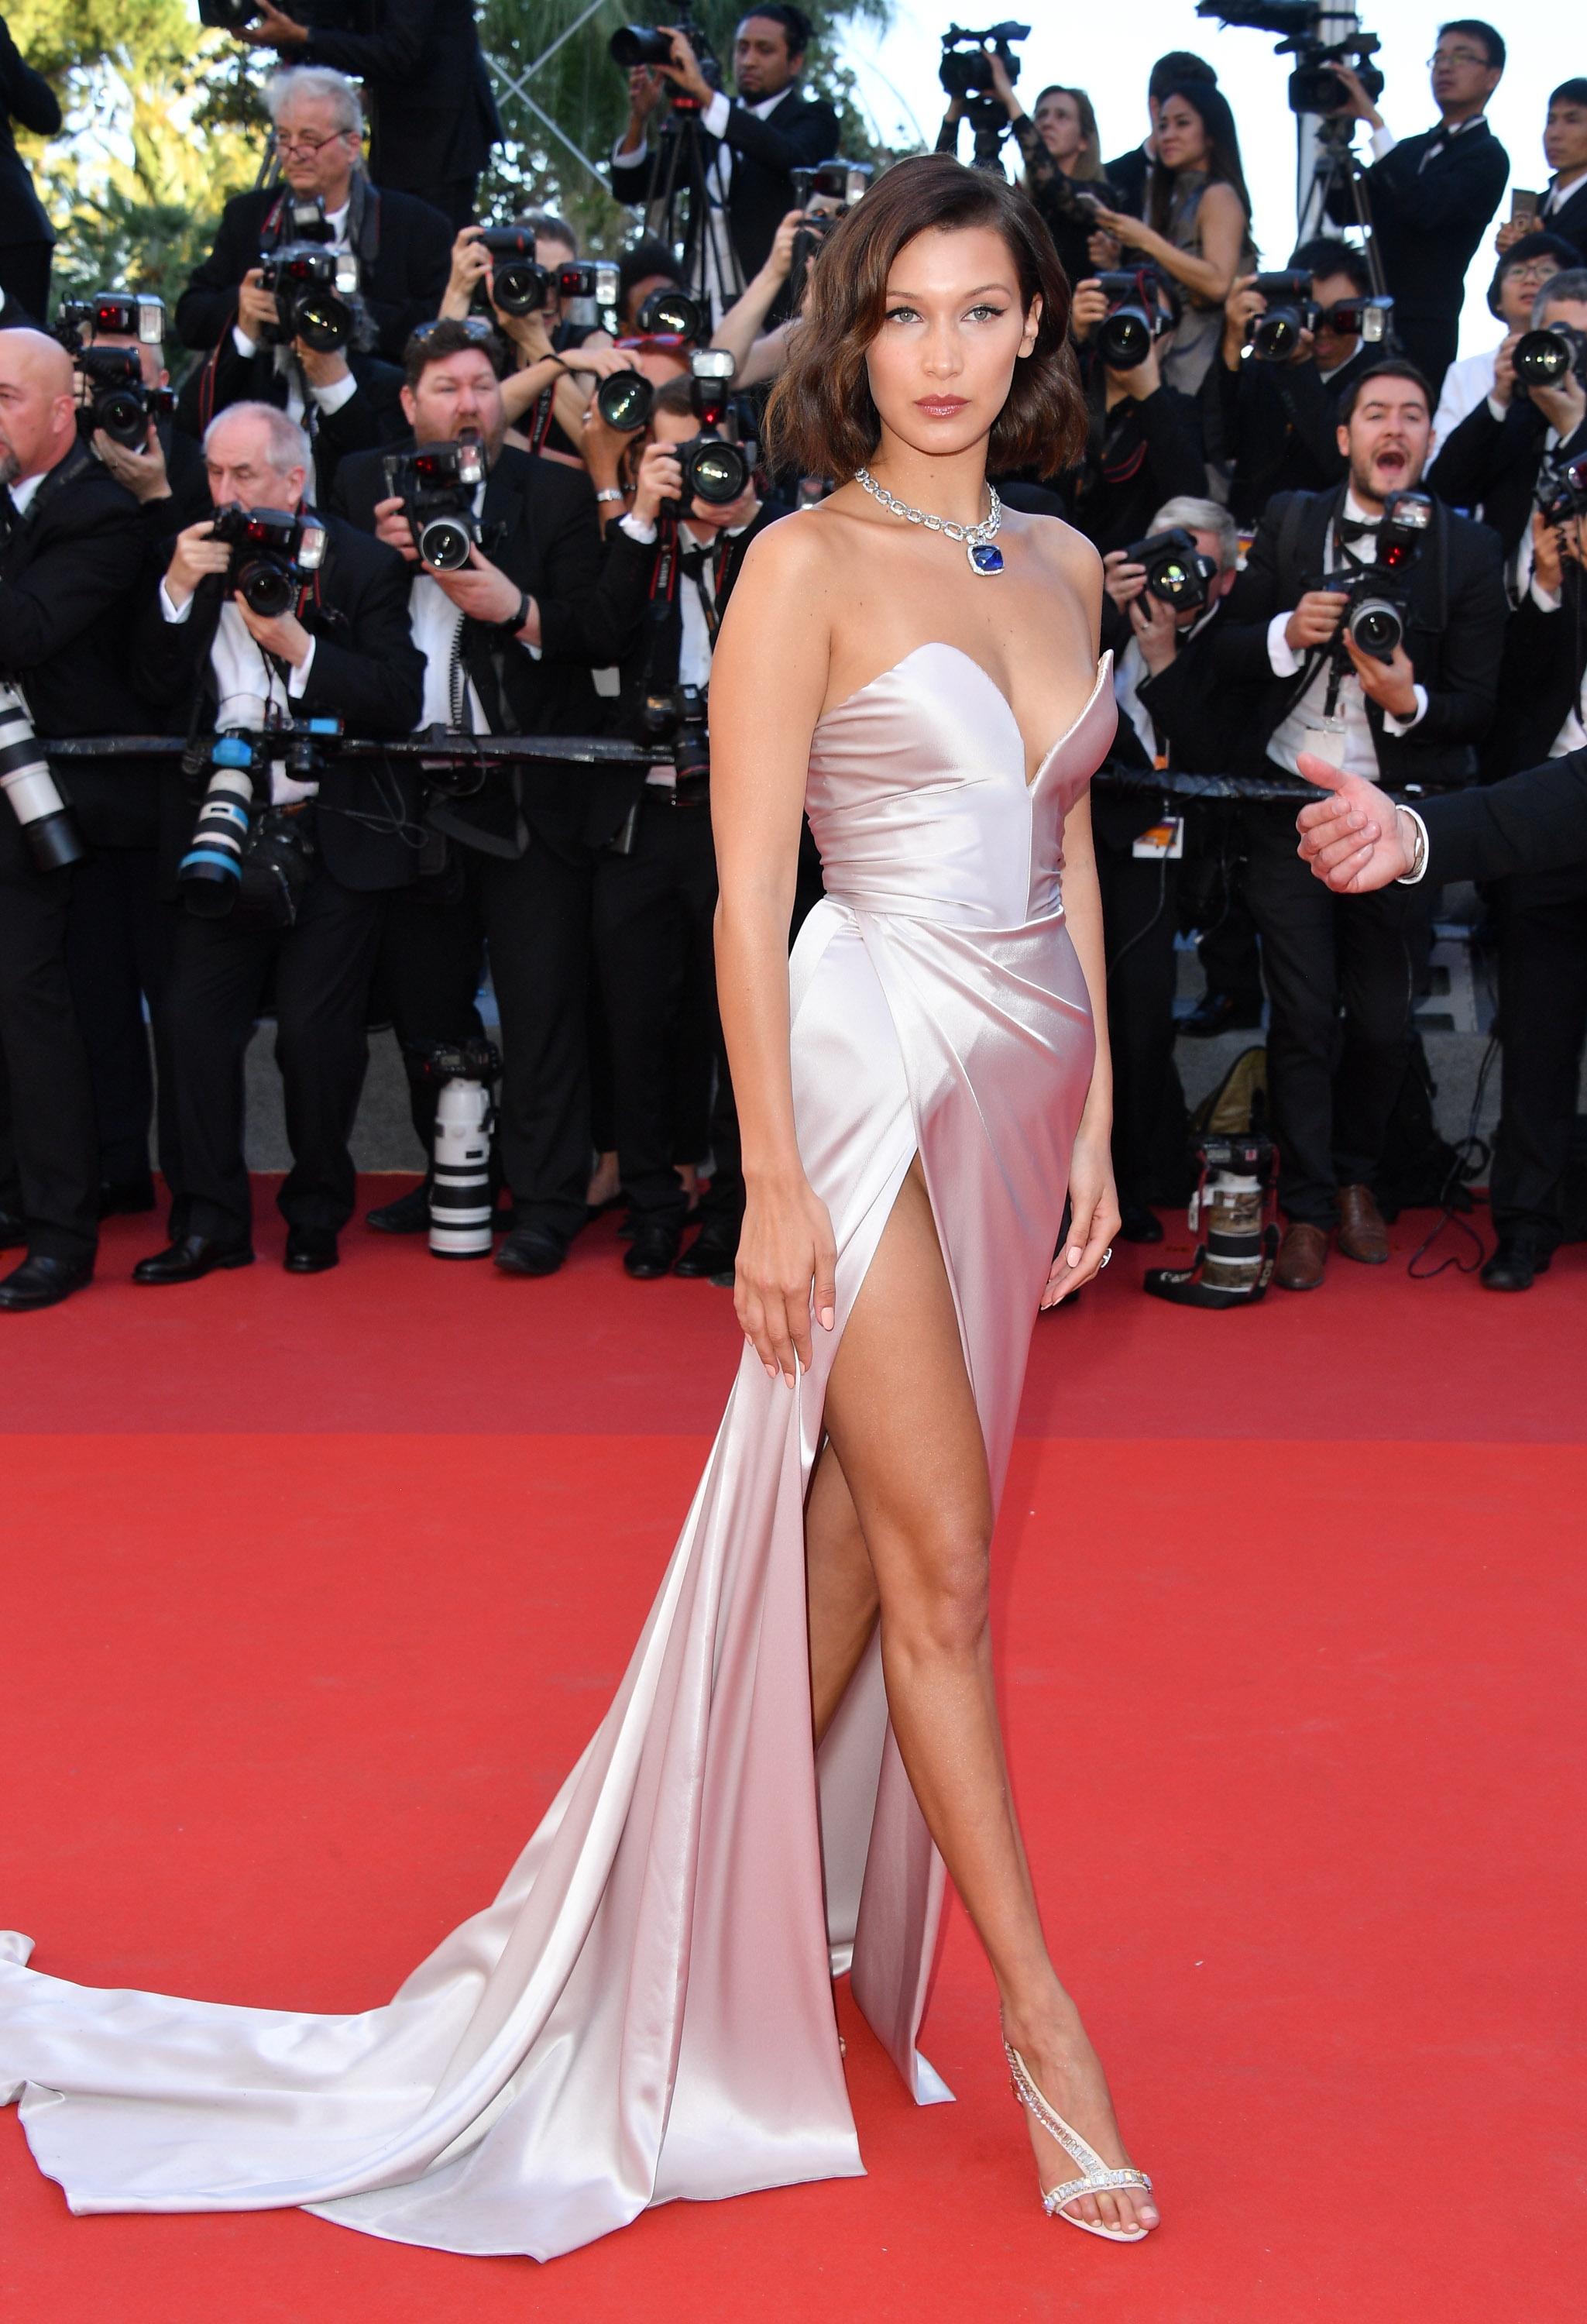 Model Bella Hadid In Alexandre Vauthier At The  Cannes Film Festival